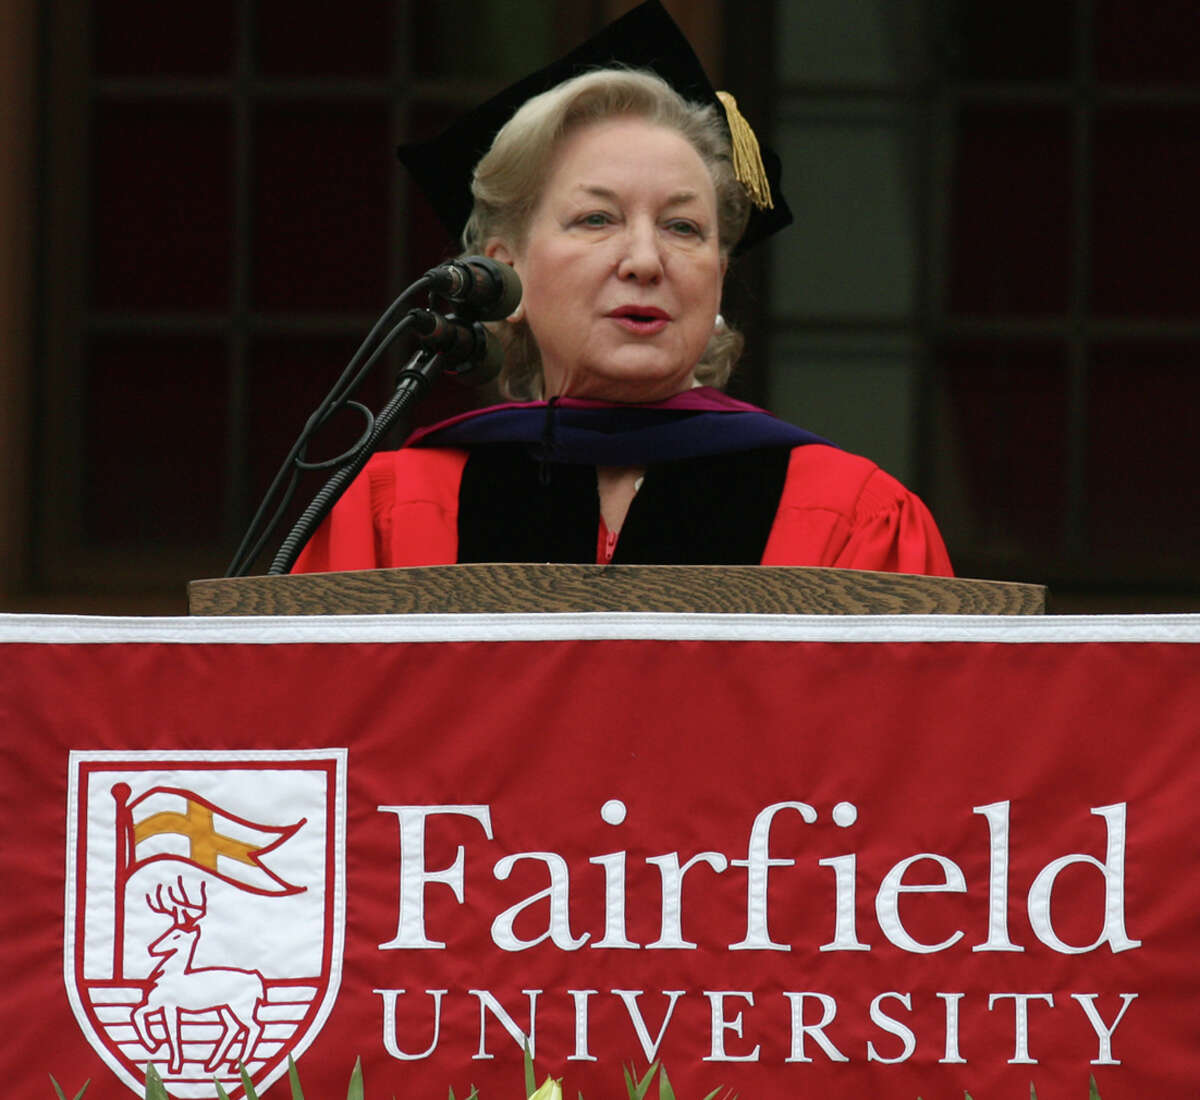 Maryanne Trump Barry gives the Commencement Address at Fairfield University in 2011. Trump Barry, the 78-year-old sister of Donald Trump, has given Fairfield University a $4 million gift.